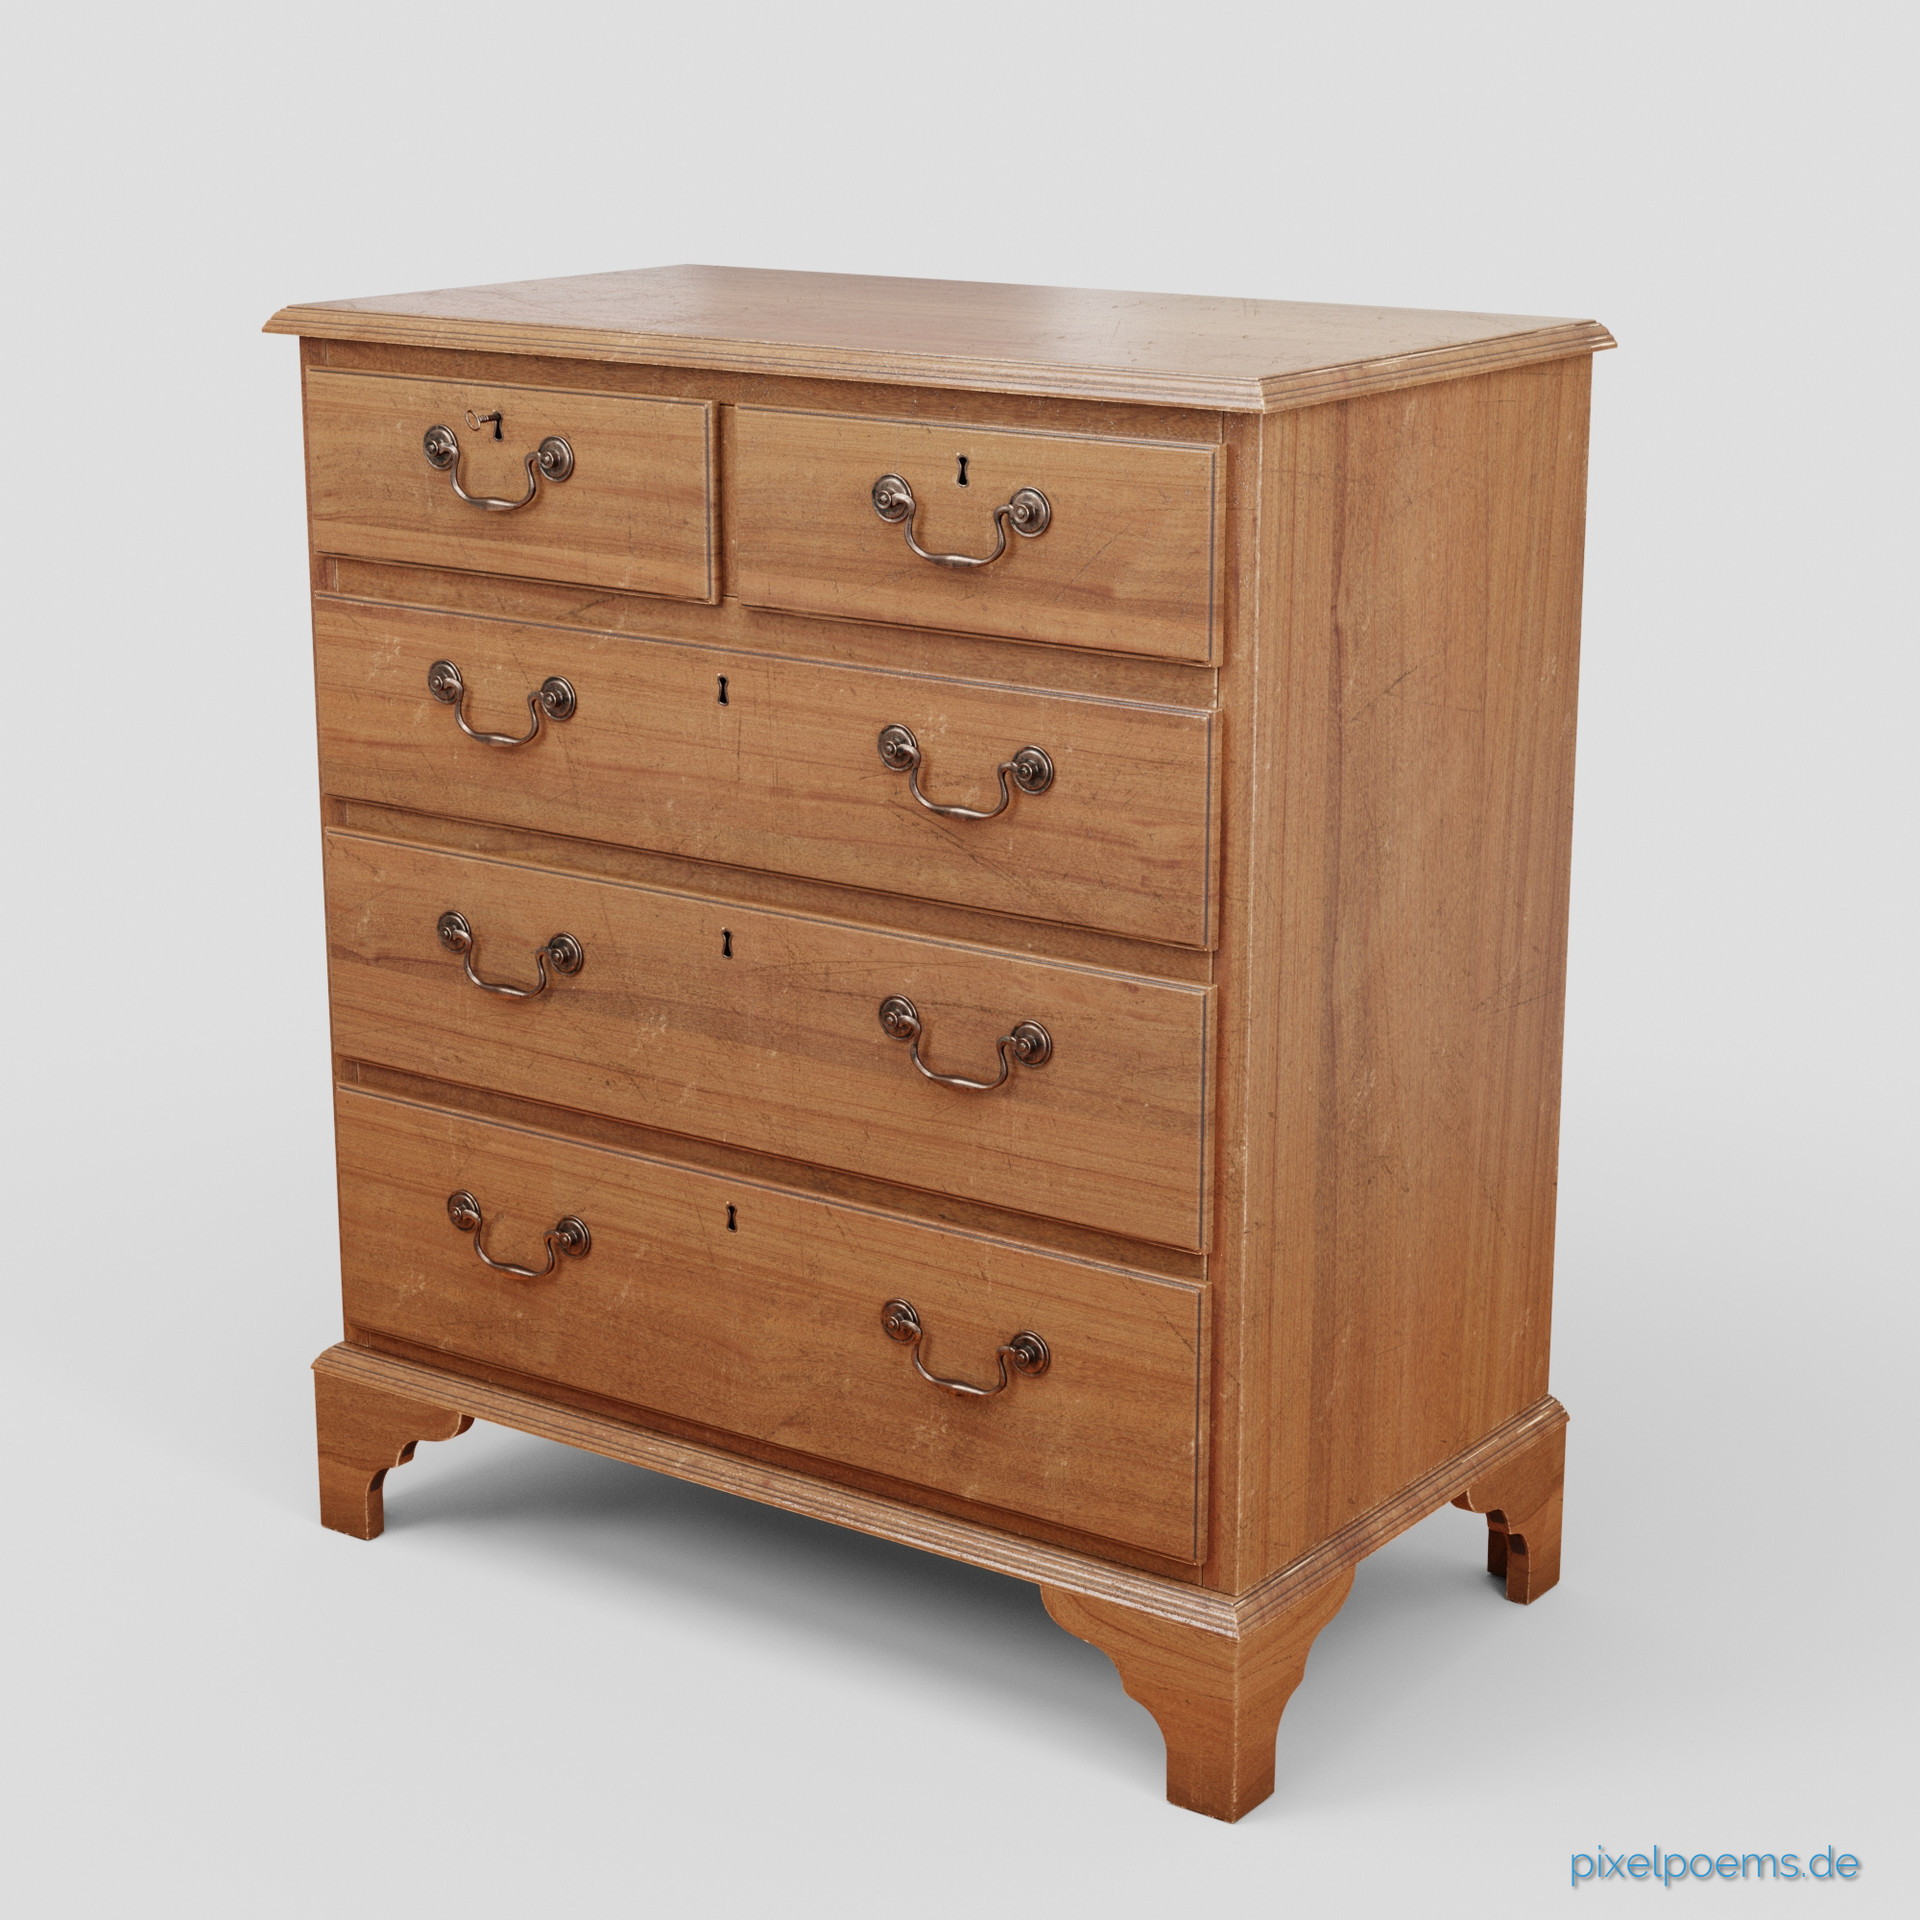 Karl andreas gross mahagony chest of drawers webversion 00